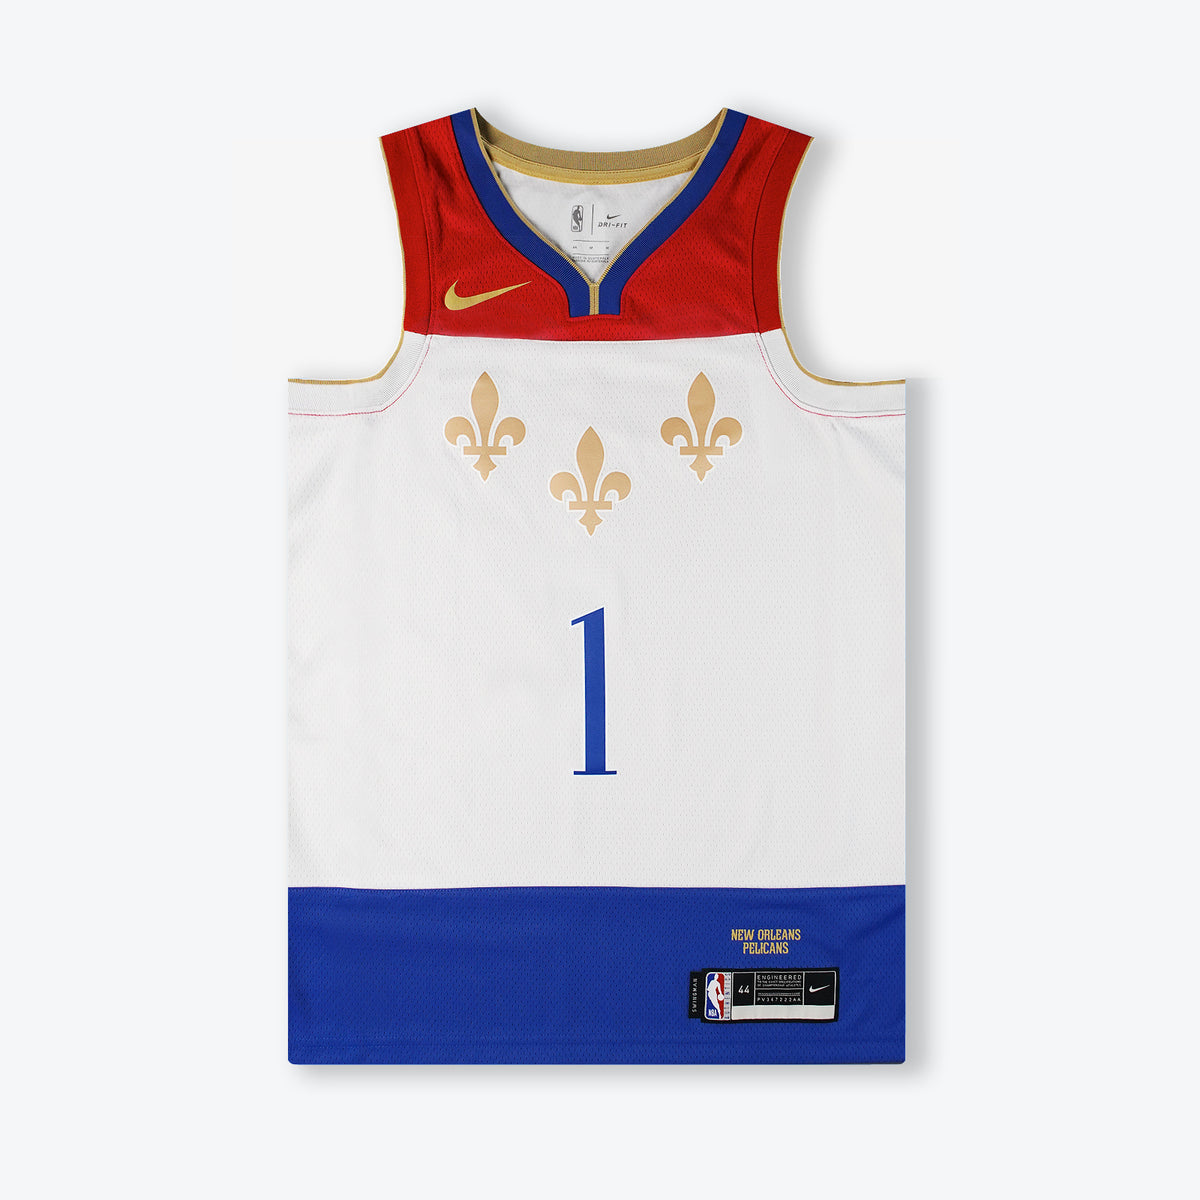 Zion Williamson New Orleans Pelicans City Edition Swingman Jersey - White